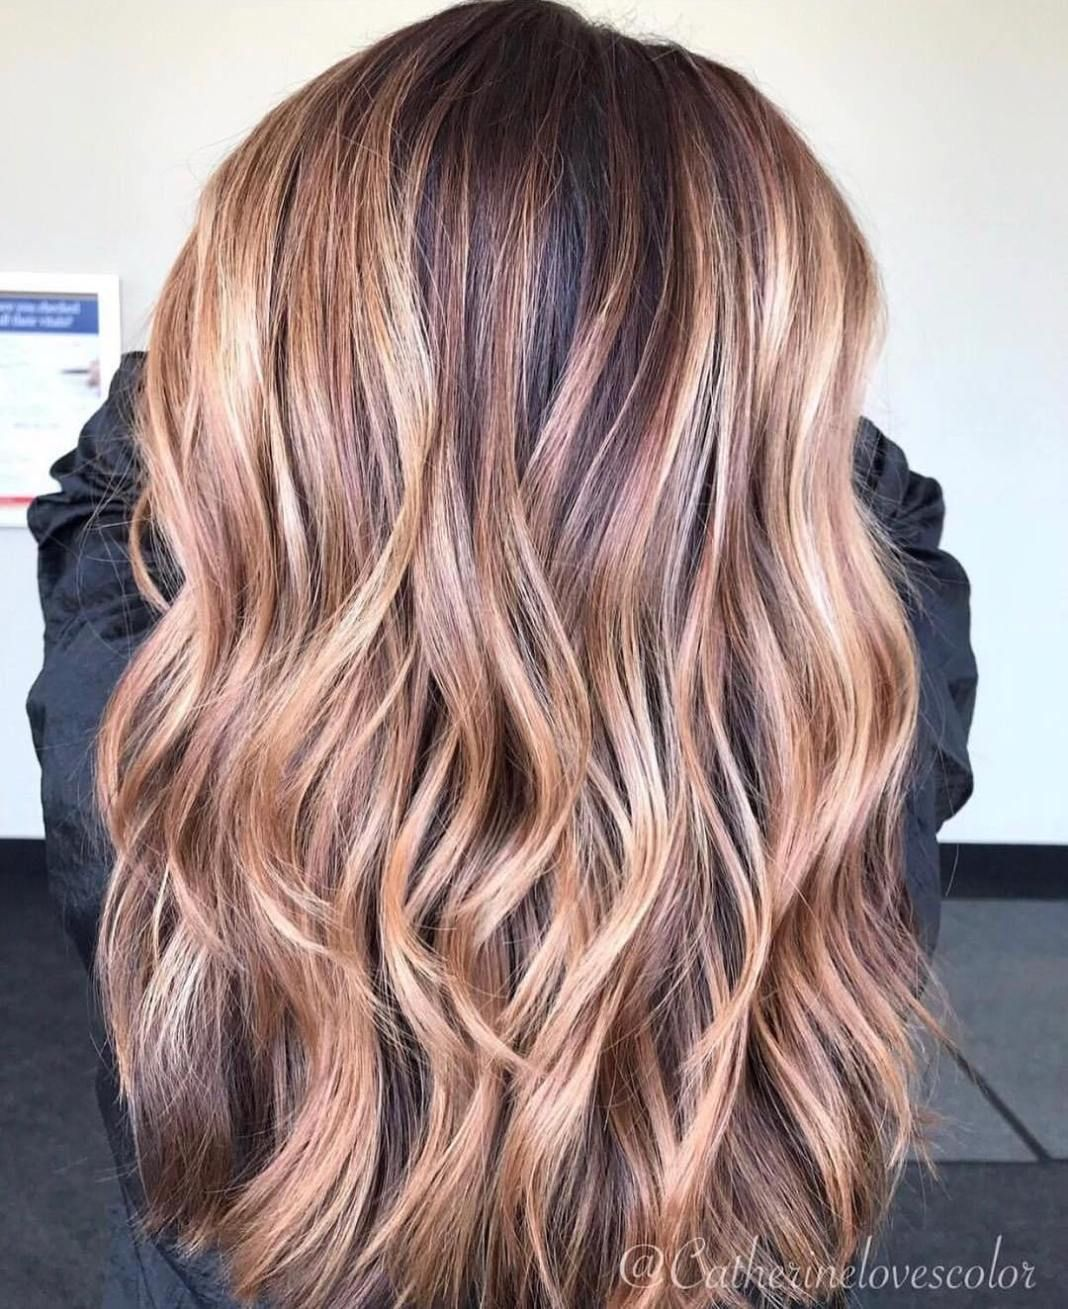 60 Looks with Caramel Highlights on Brown and Dark Brown Hair pics